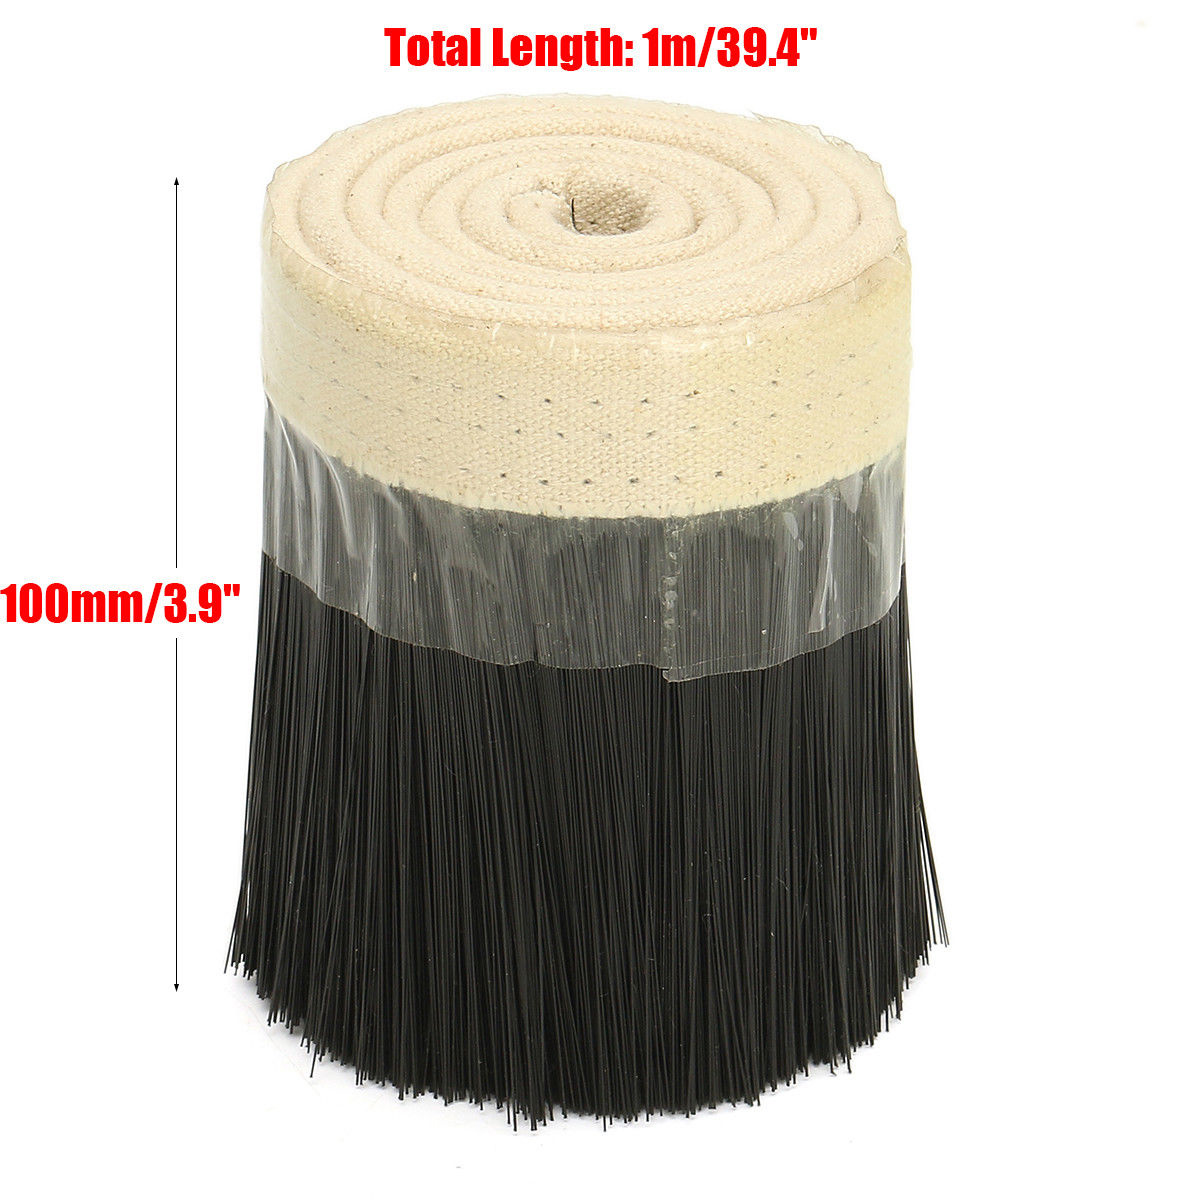 70mm/100mm Nylon Brush Vacuum Cleaner Engraving Machine Dust Cover CNC Router Outdoor For Spindle Motor